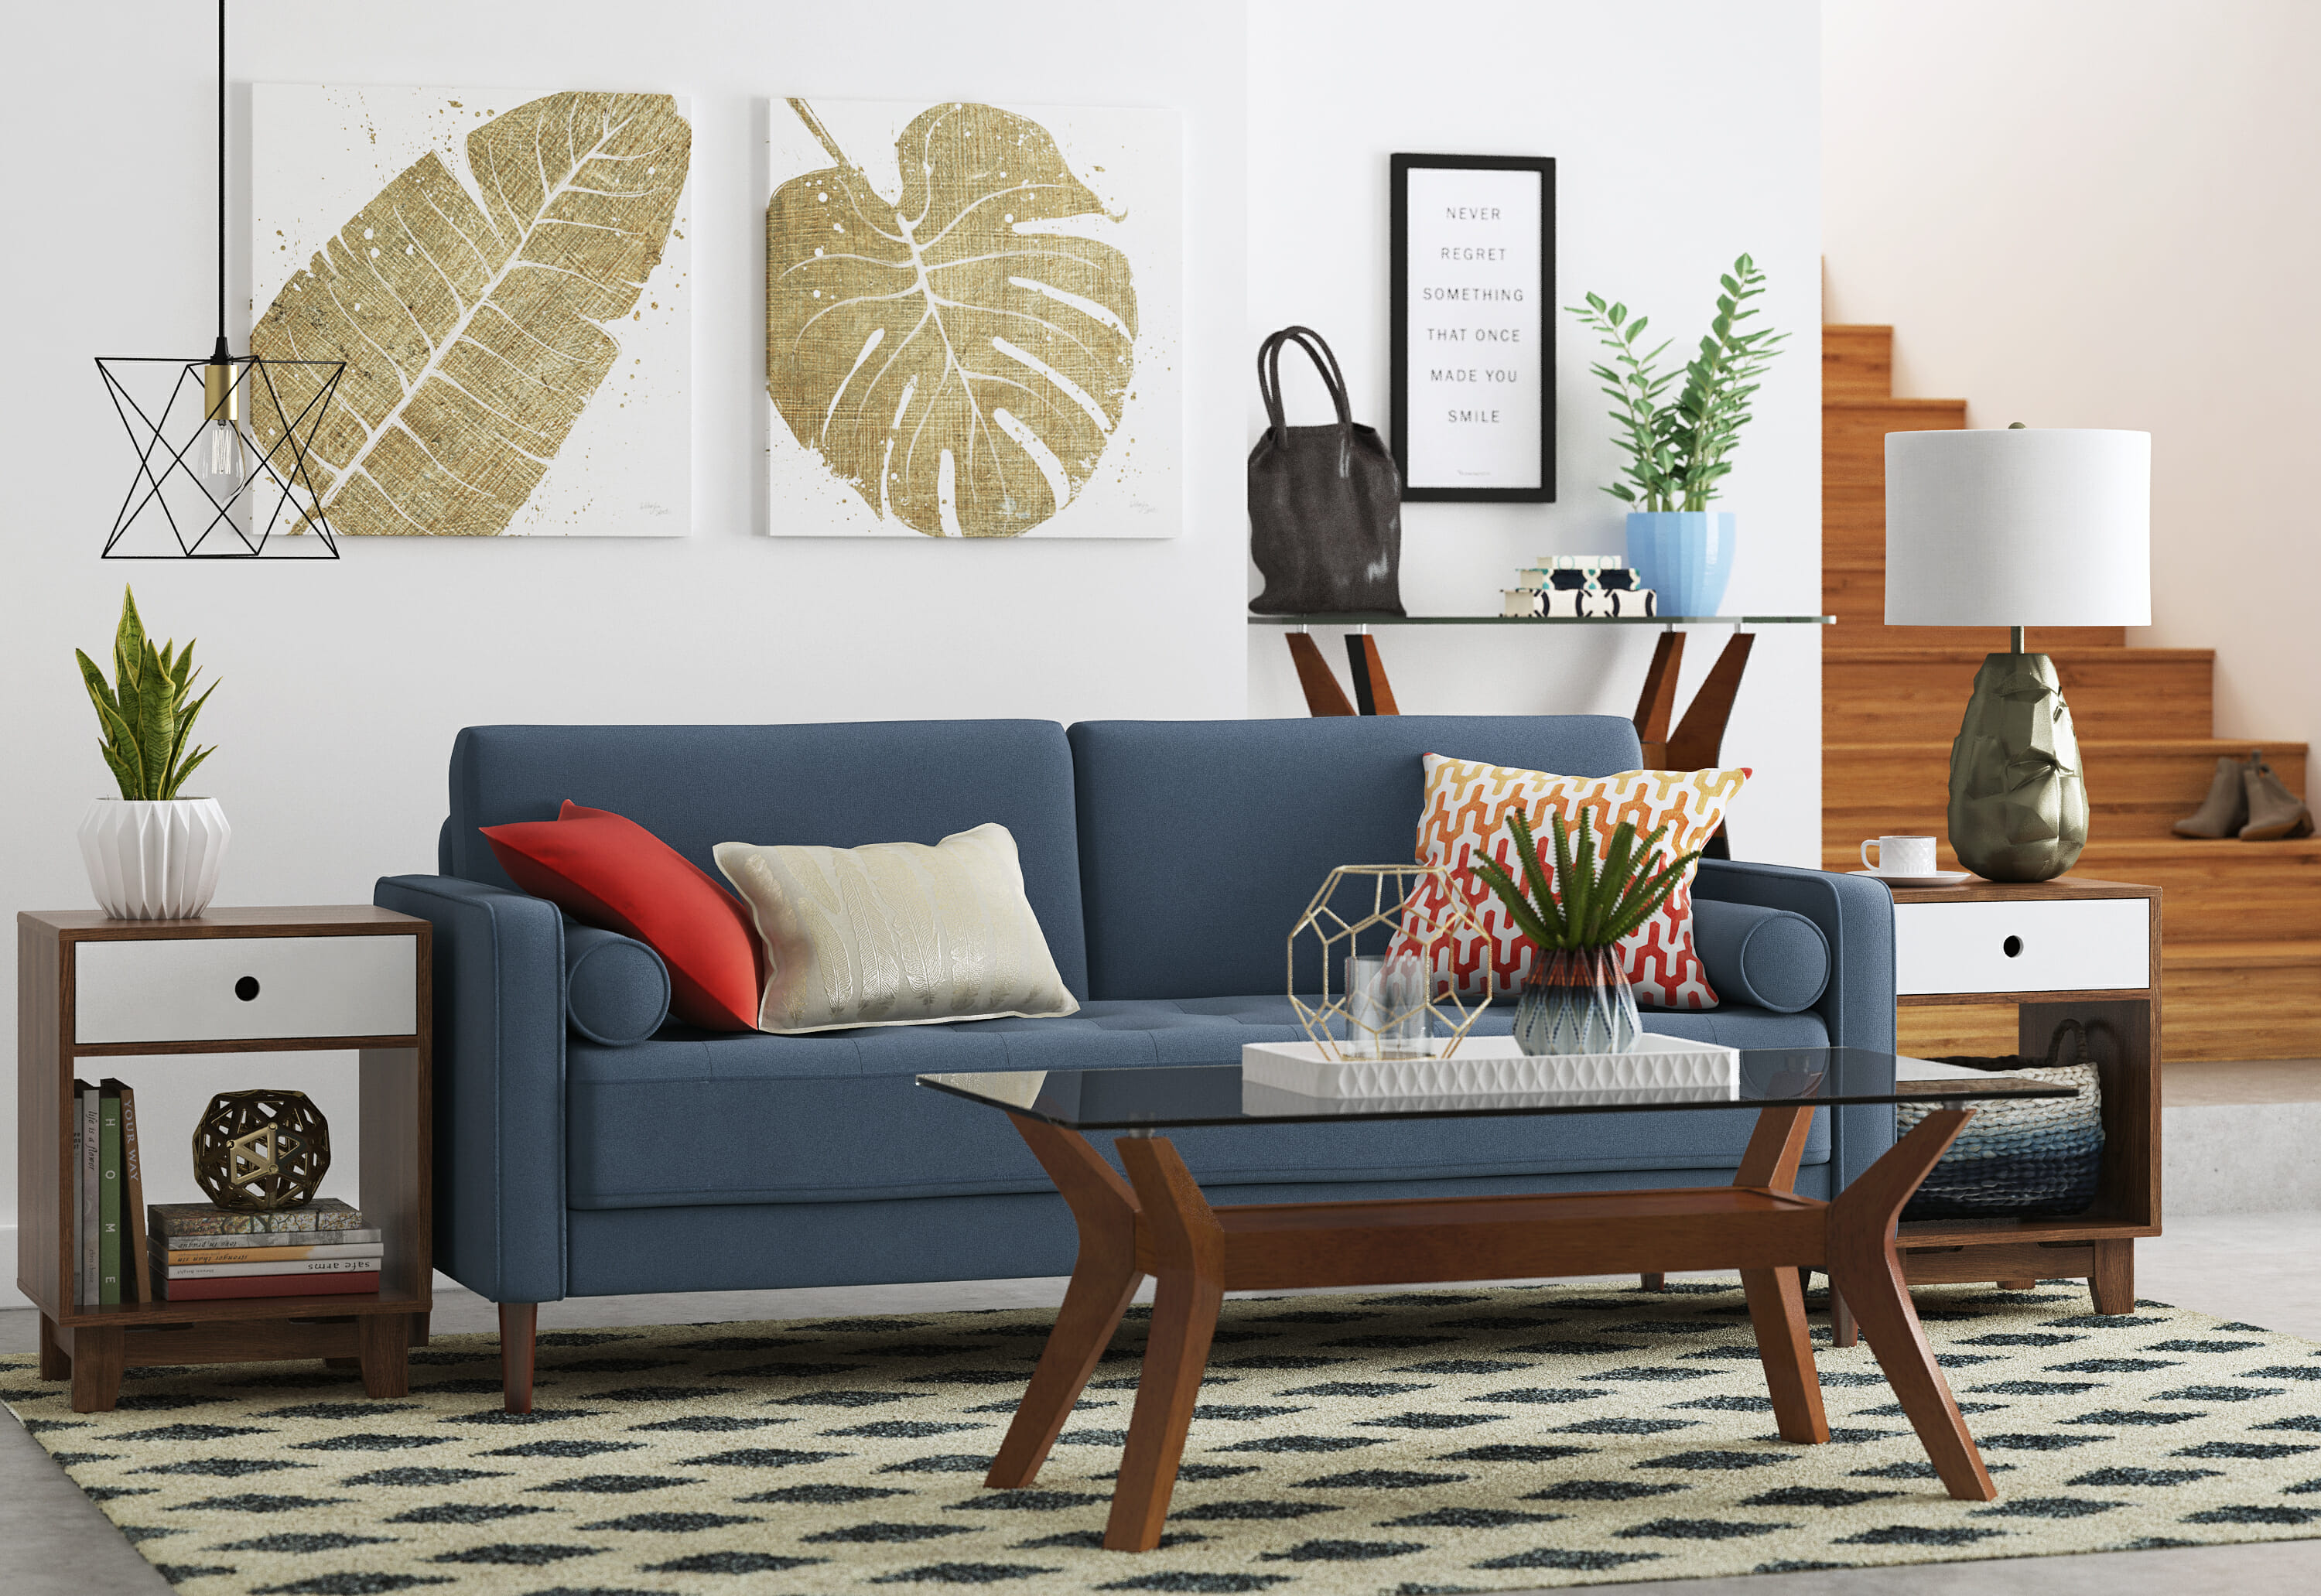 7 Of Summer's Hottest Interior Design Trends